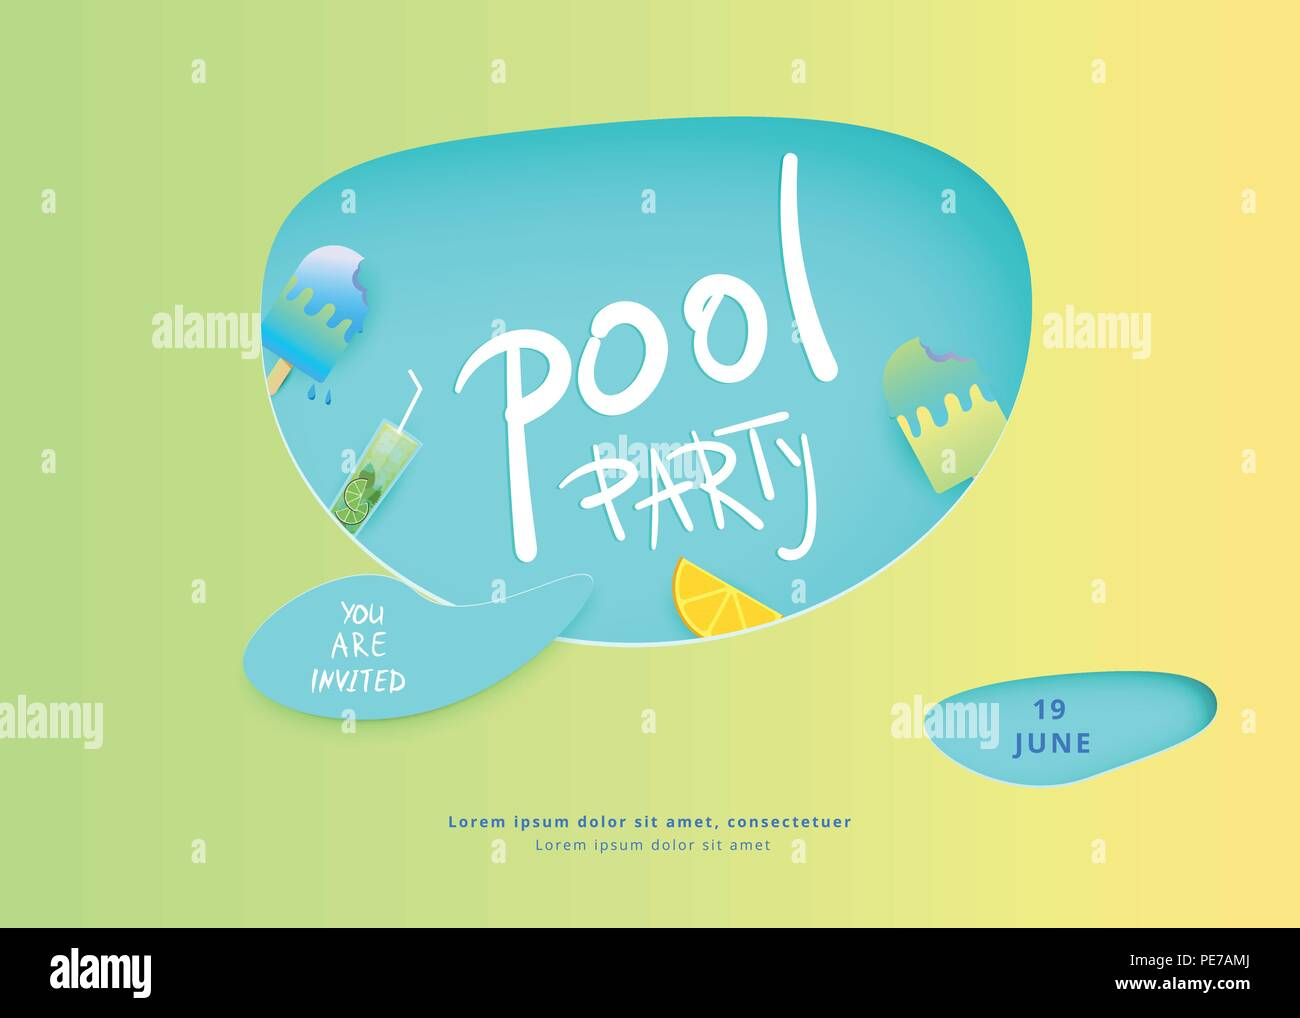 Horizontal Pool Party Banner Template For Holiday Summer Flyer